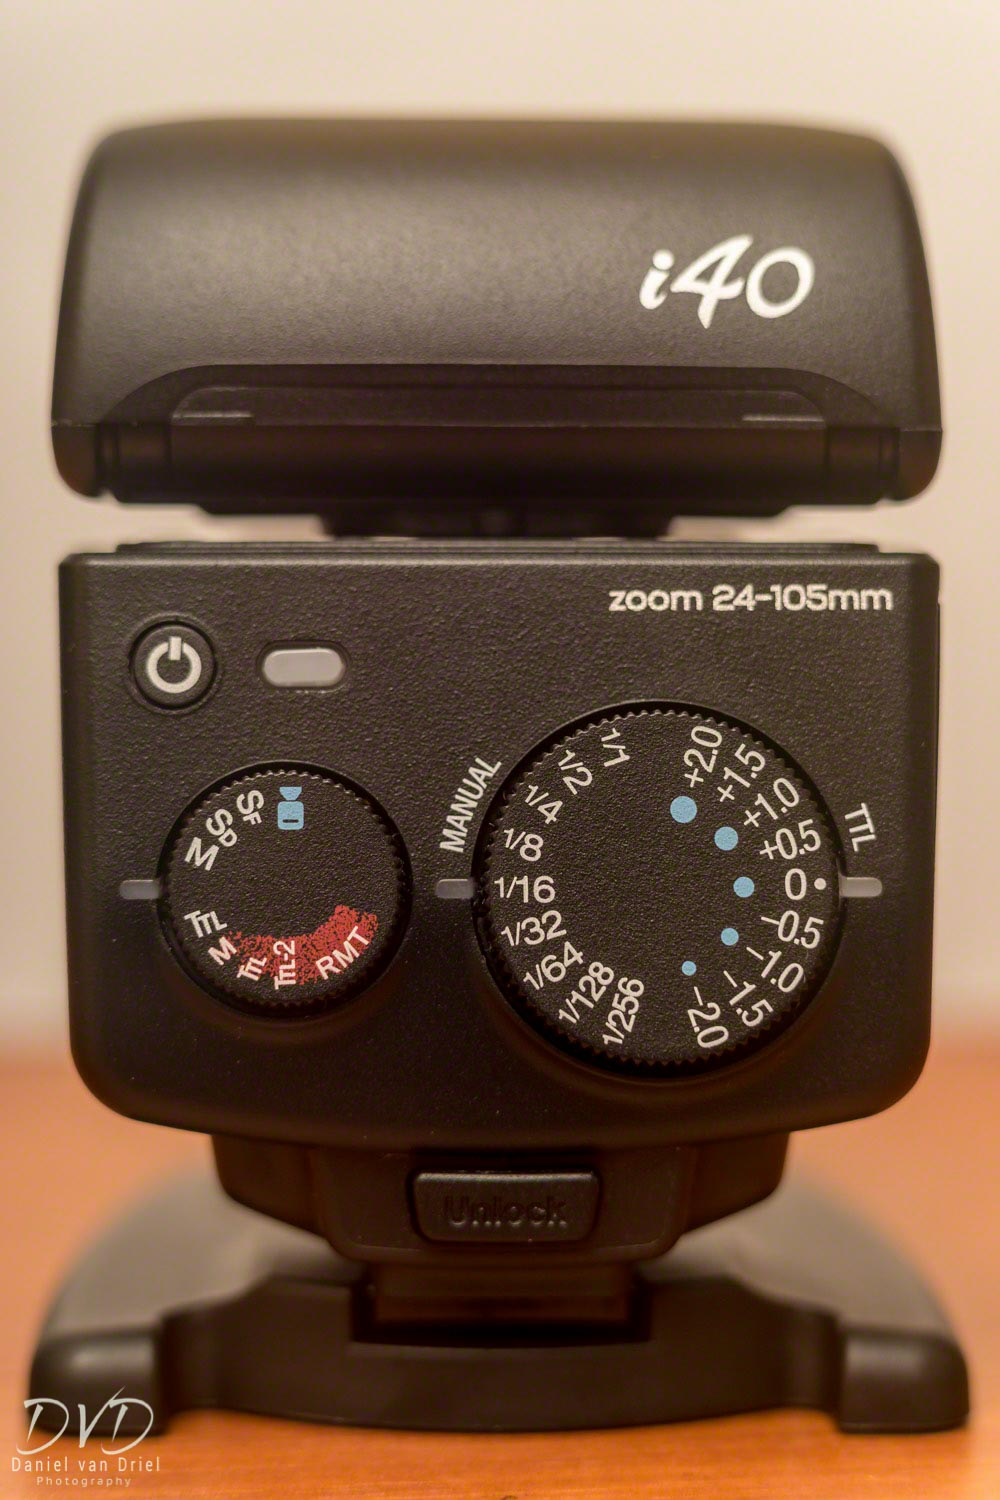 Back Dials of Nissin i40